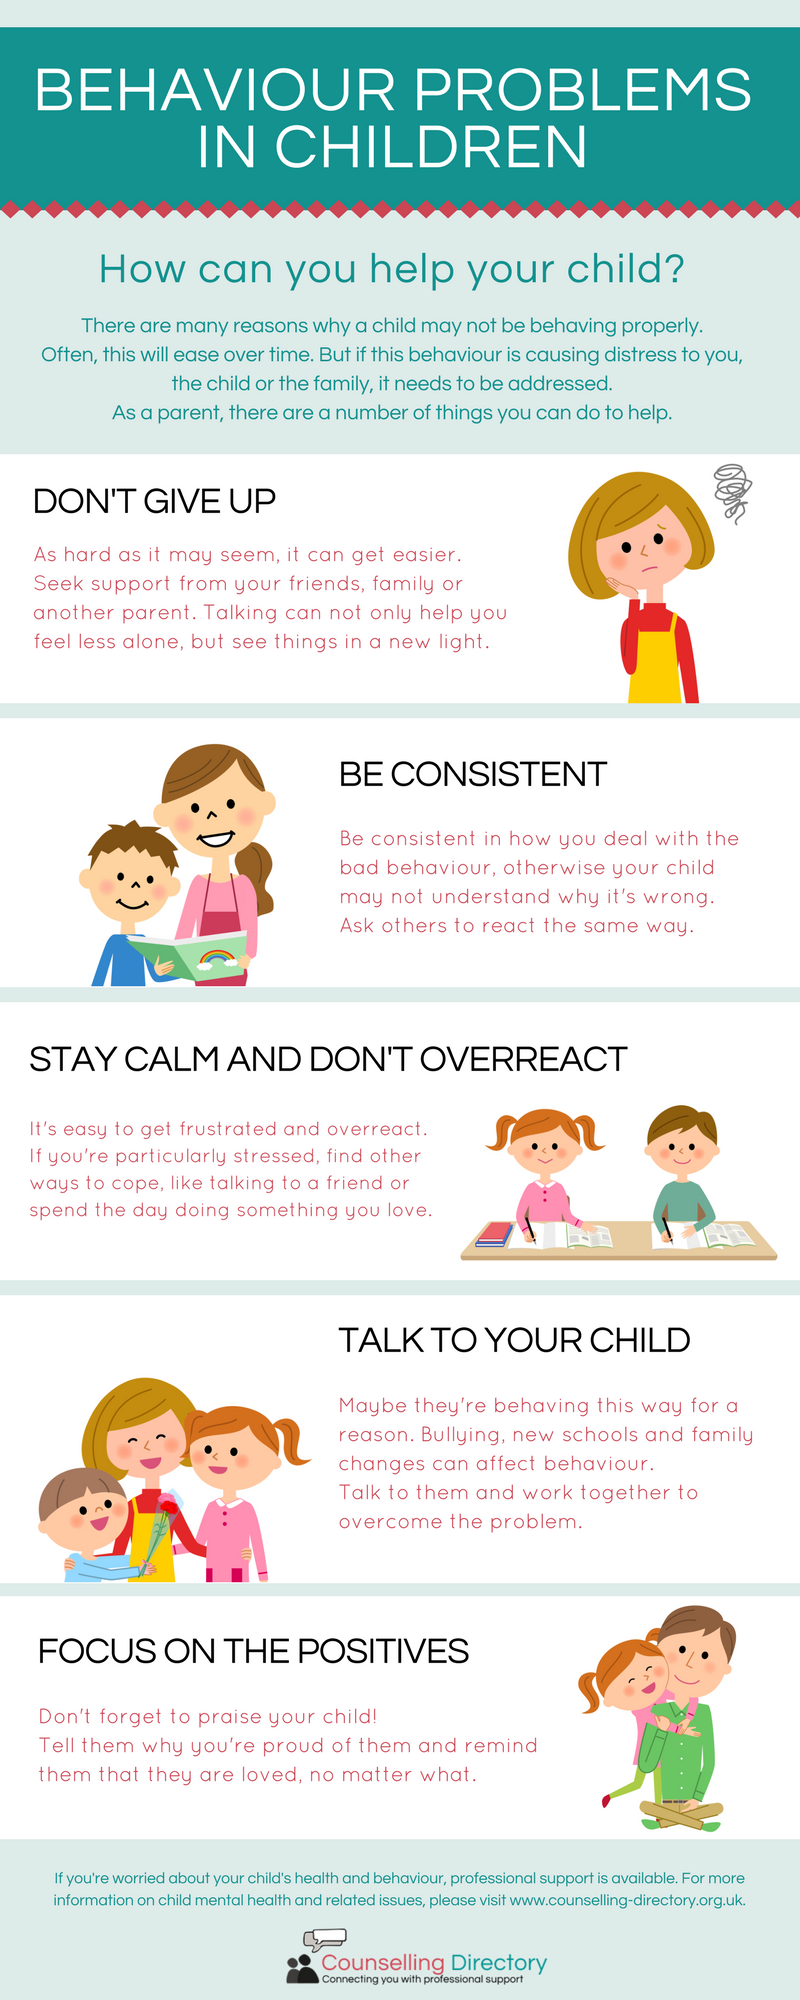 Behaviour problems in children infographic